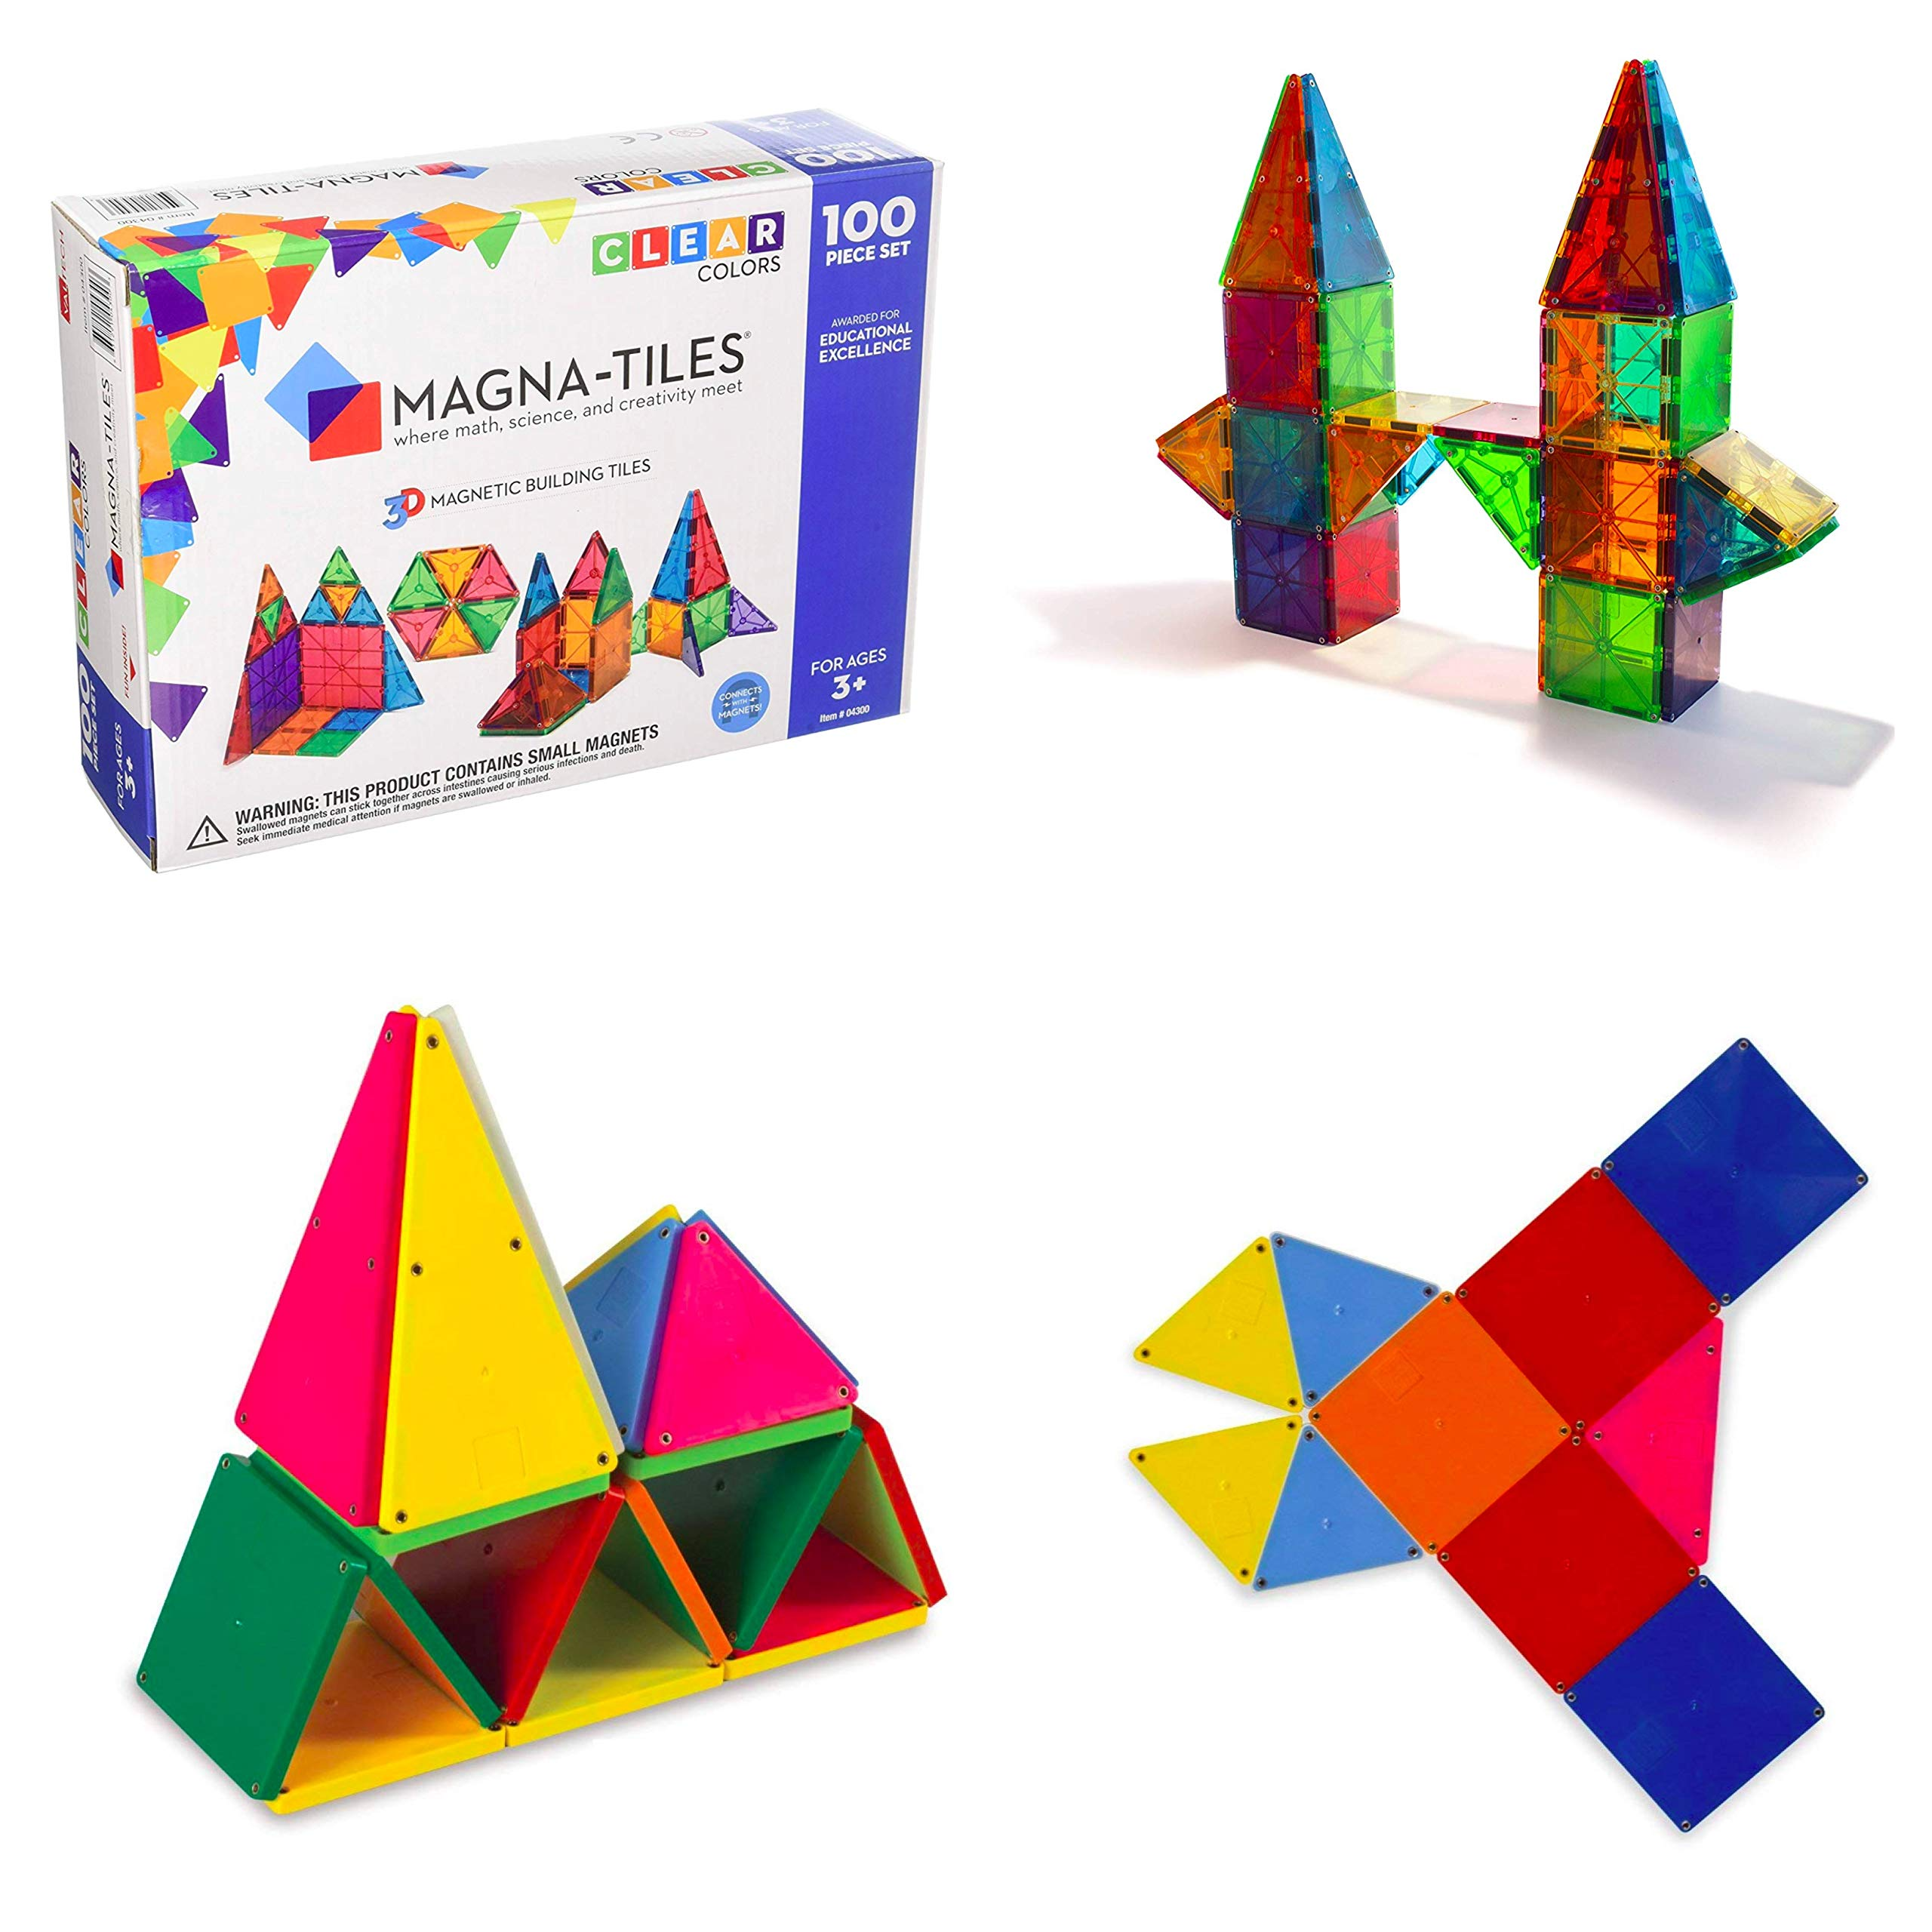 Magna-Tiles 100-Piece Clear Colors Set - The Original, Award-Winning Magnetic Building Tiles - Creativity and Educational - STEM Approved Bundled 02300 Solid Colors 100 Piece Set by Magna-Tiles (Image #9)